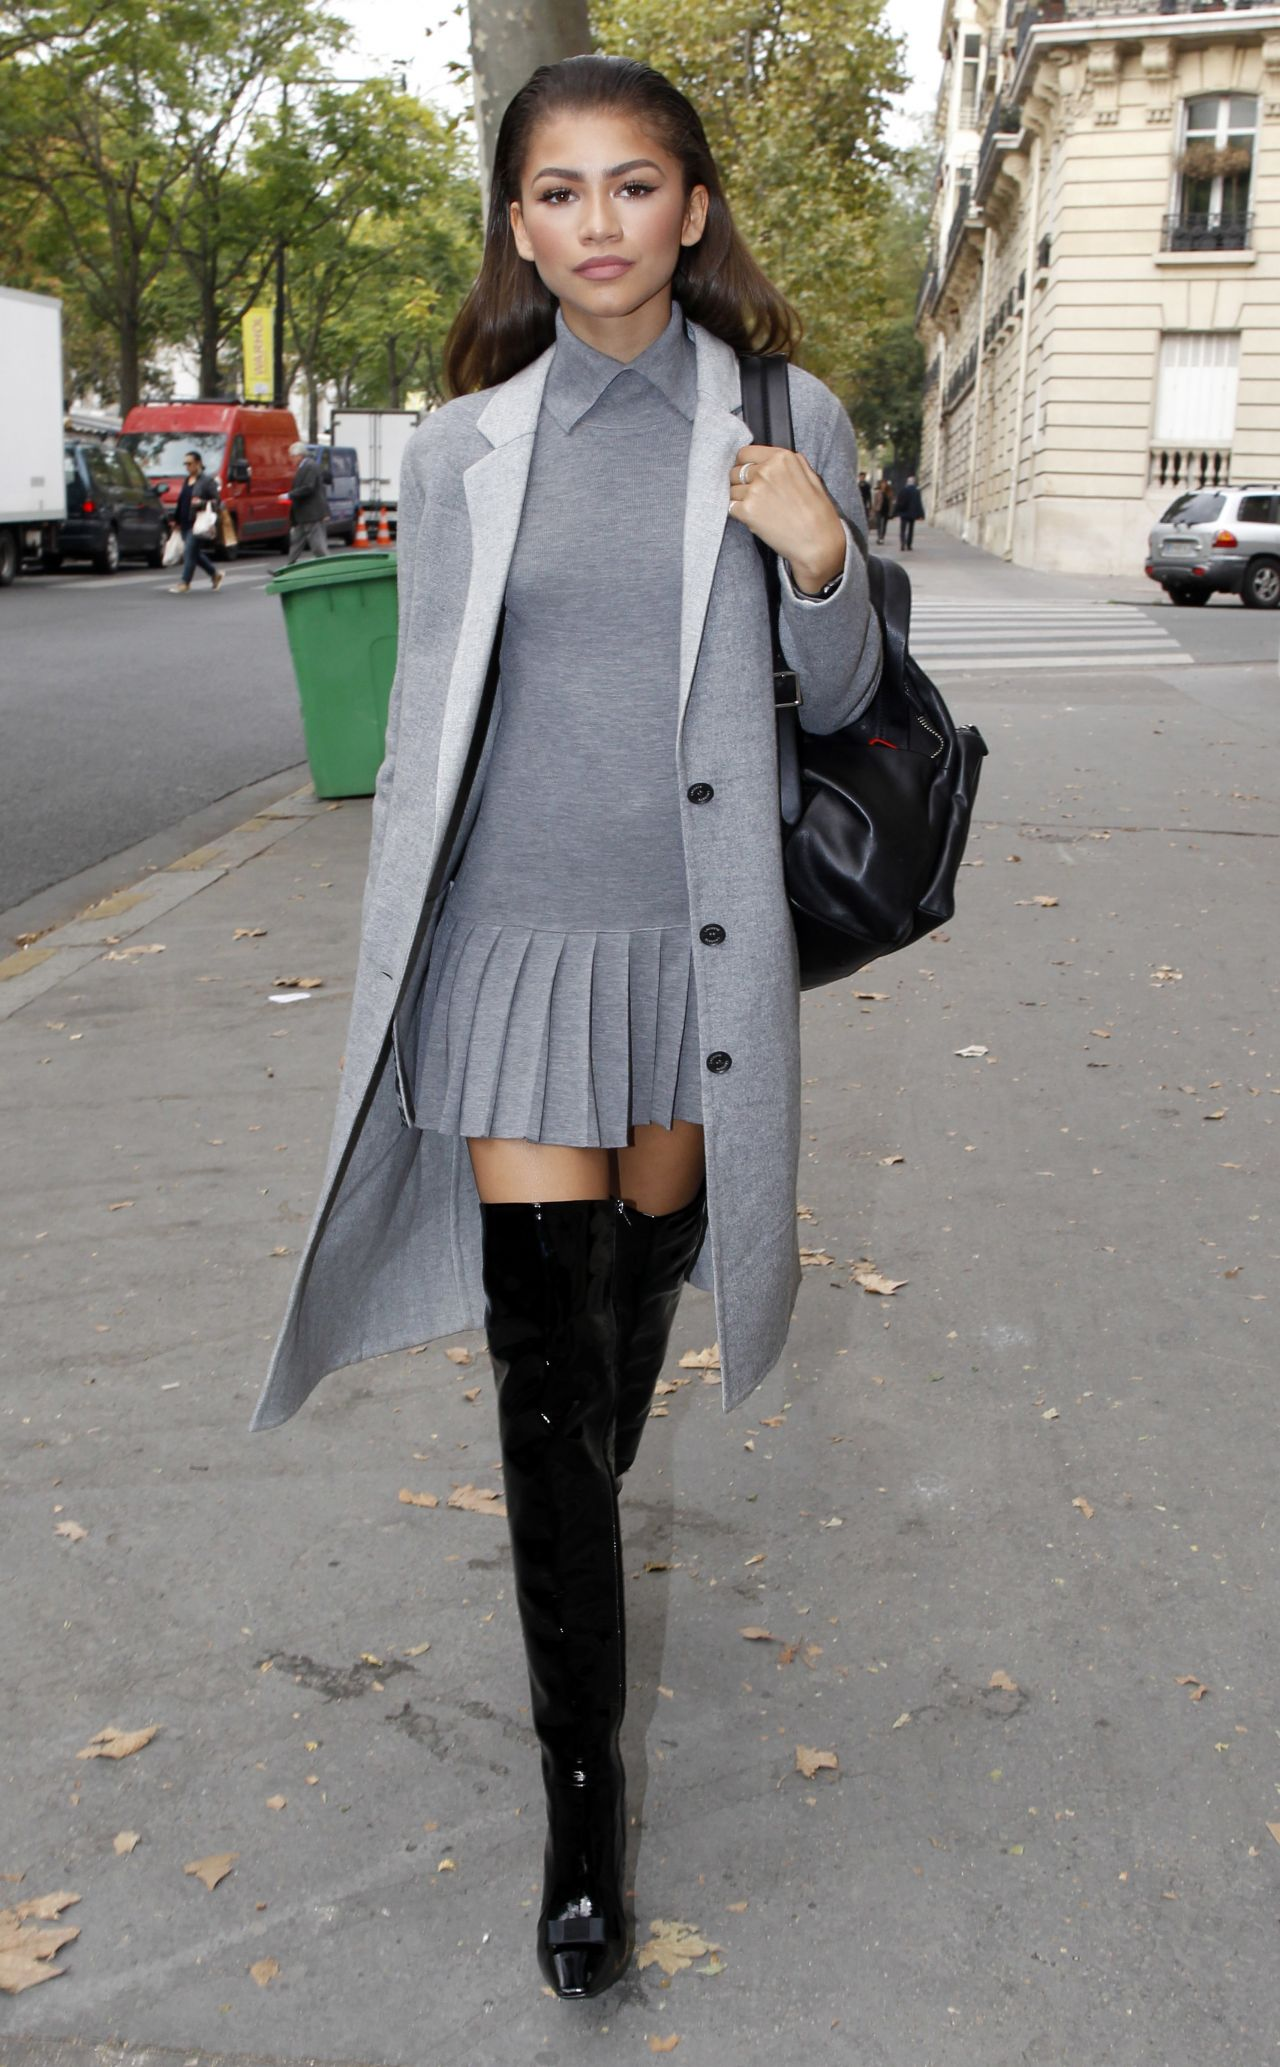 Zendaya Out In Paris Fashion Sizzle